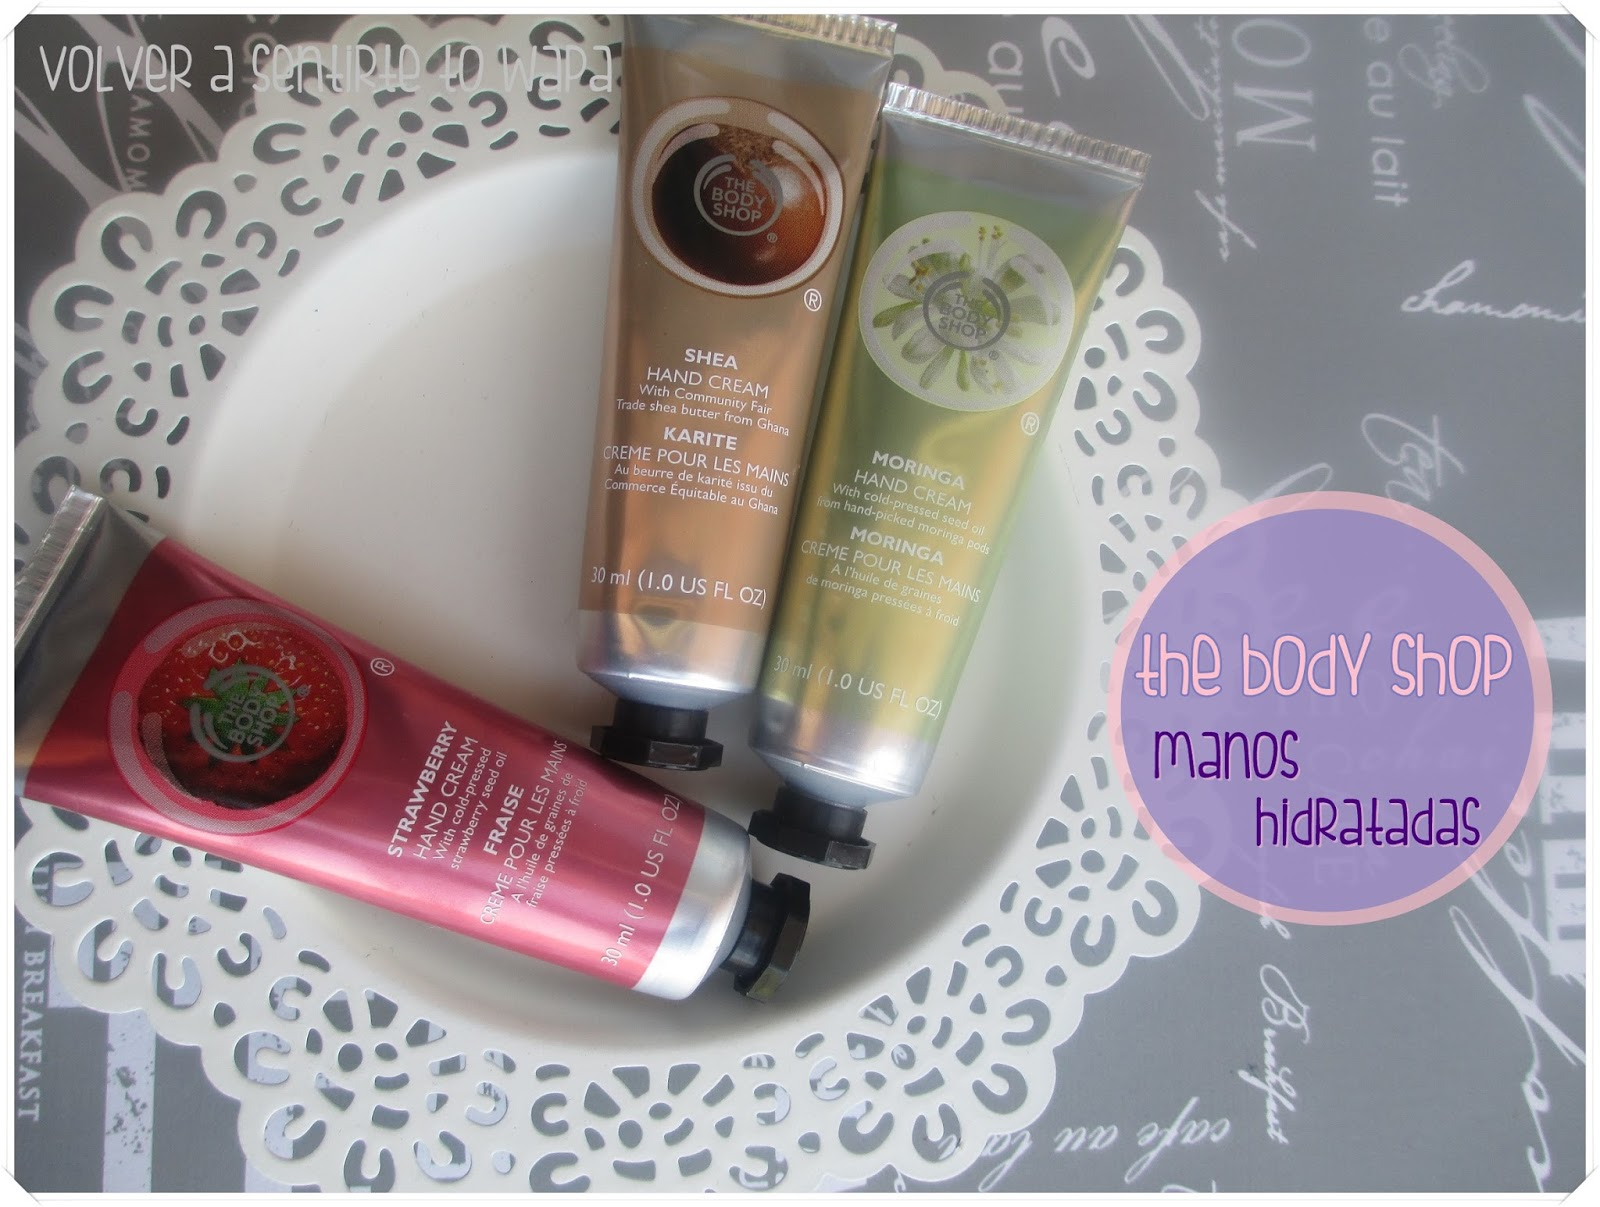 Mini-Cremas de manos HIDRATANTES de THE BODY SHOP